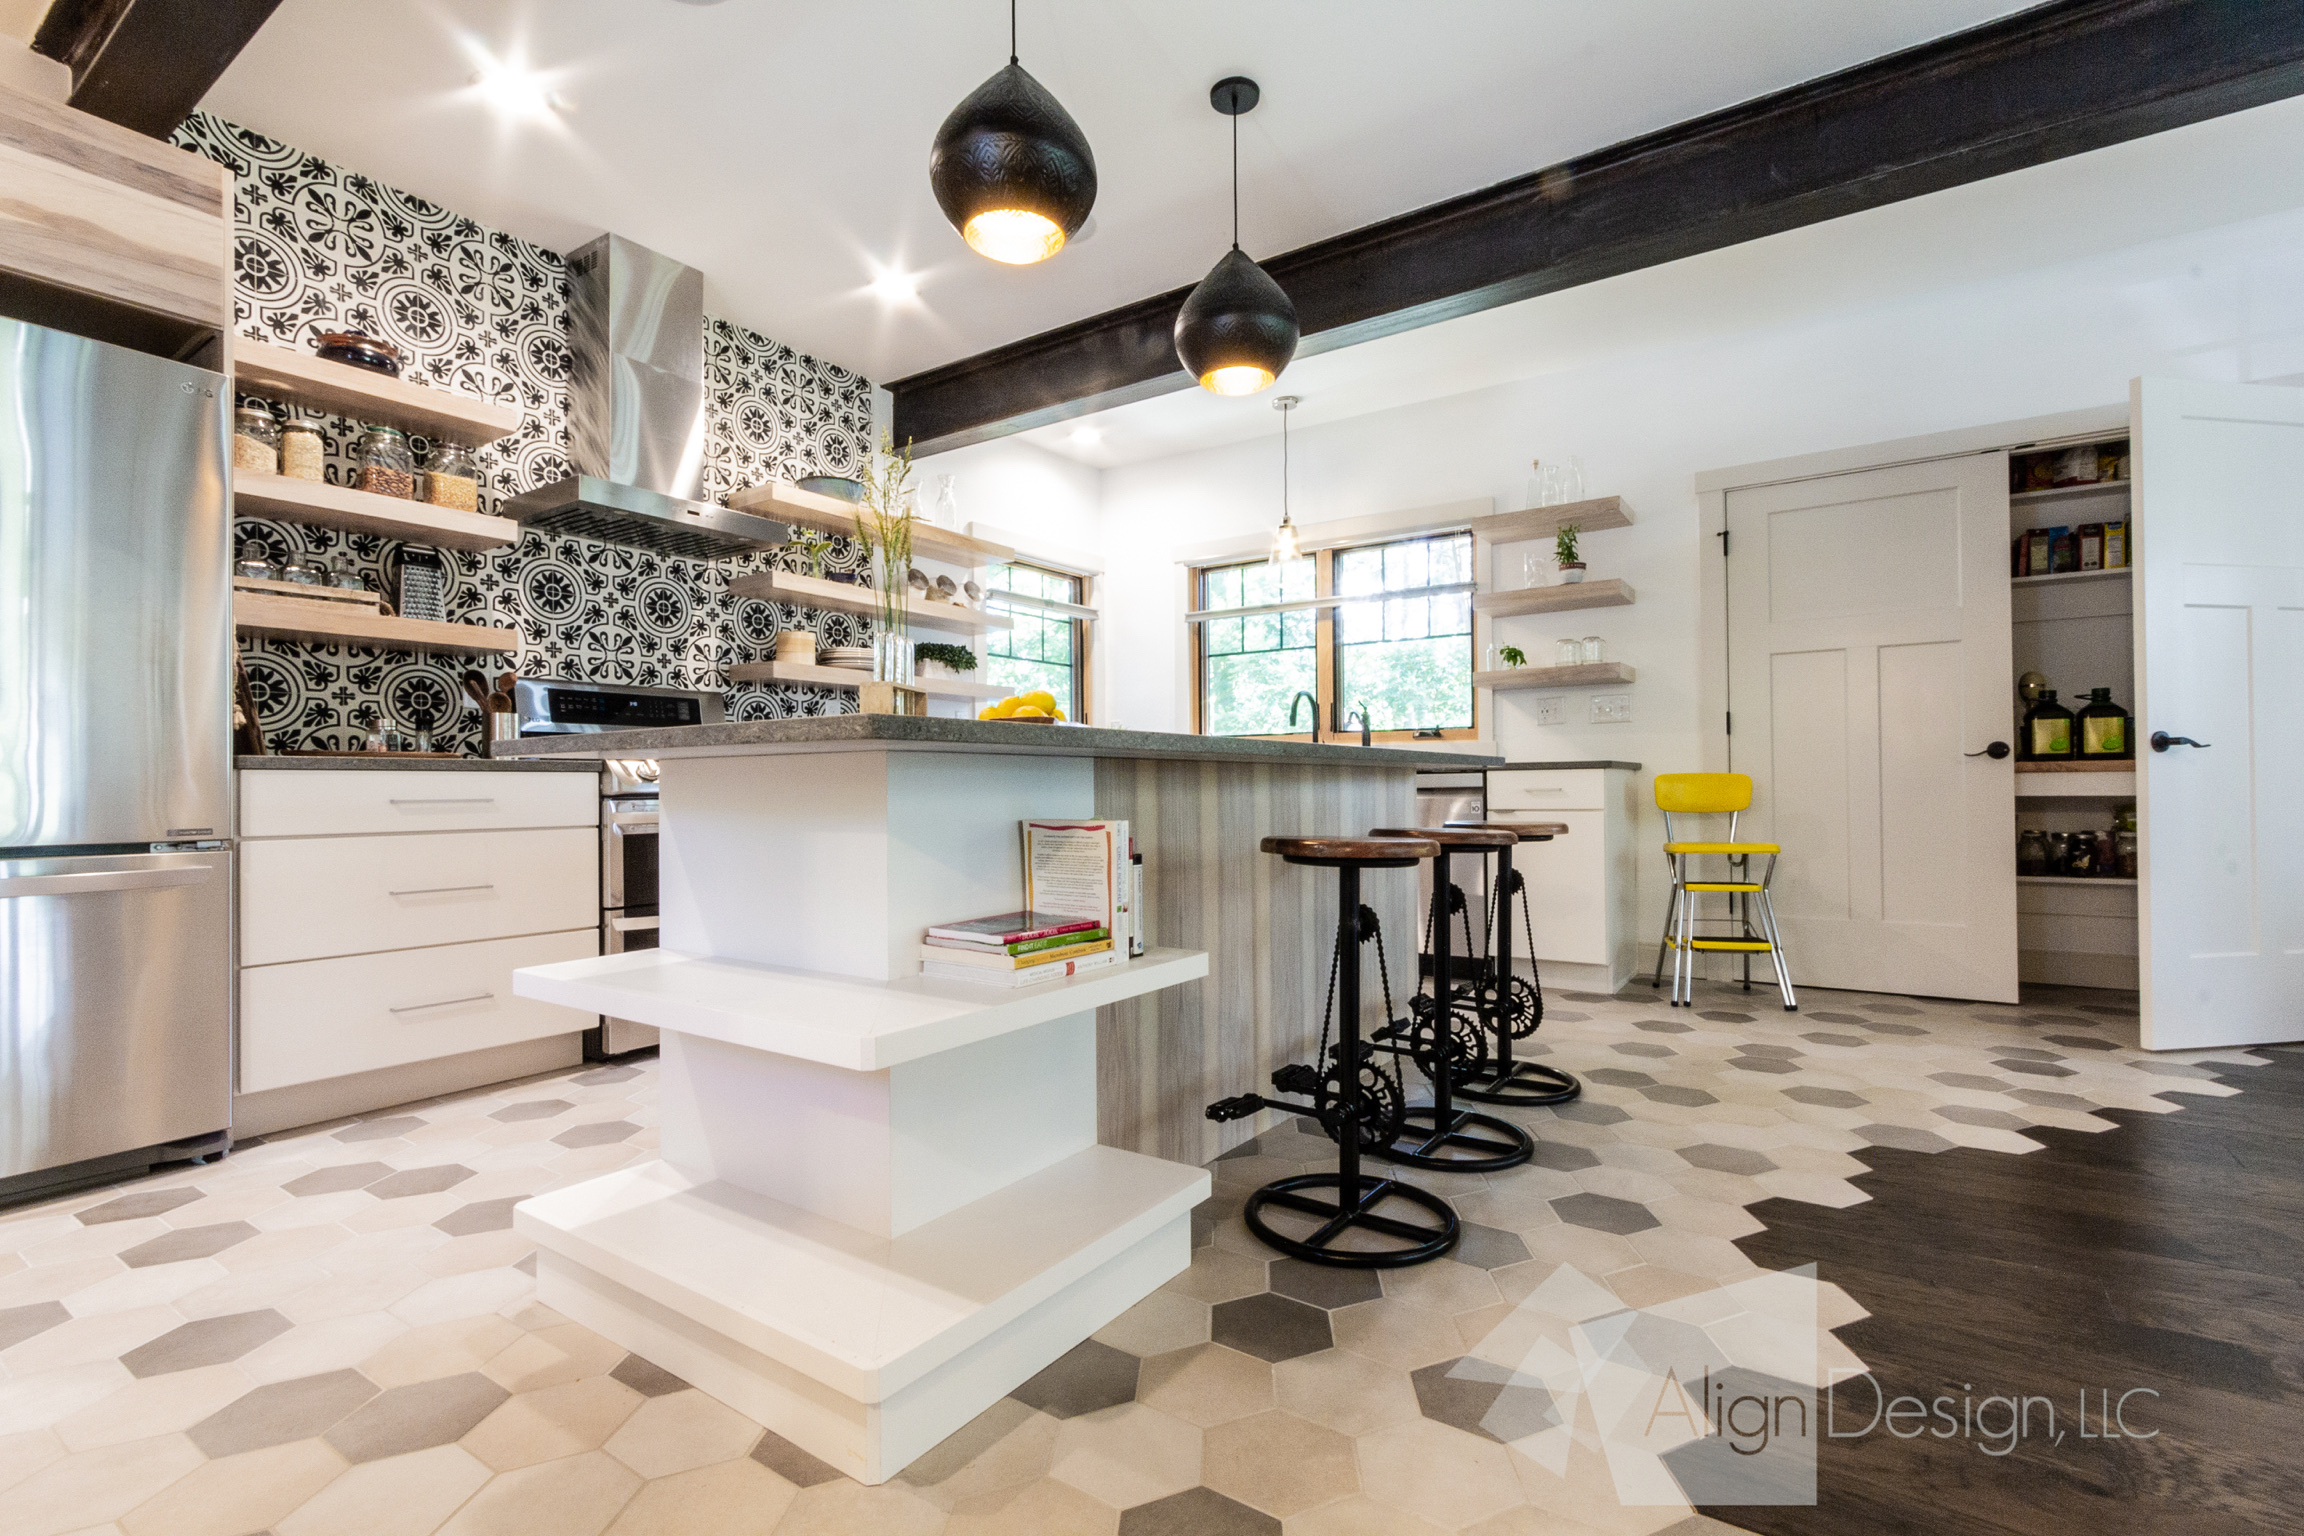 Align Design Proves That Remodeling Can Bring Function And Beauty Together At Any Price Point Asheville Area Chamber Of Commerce